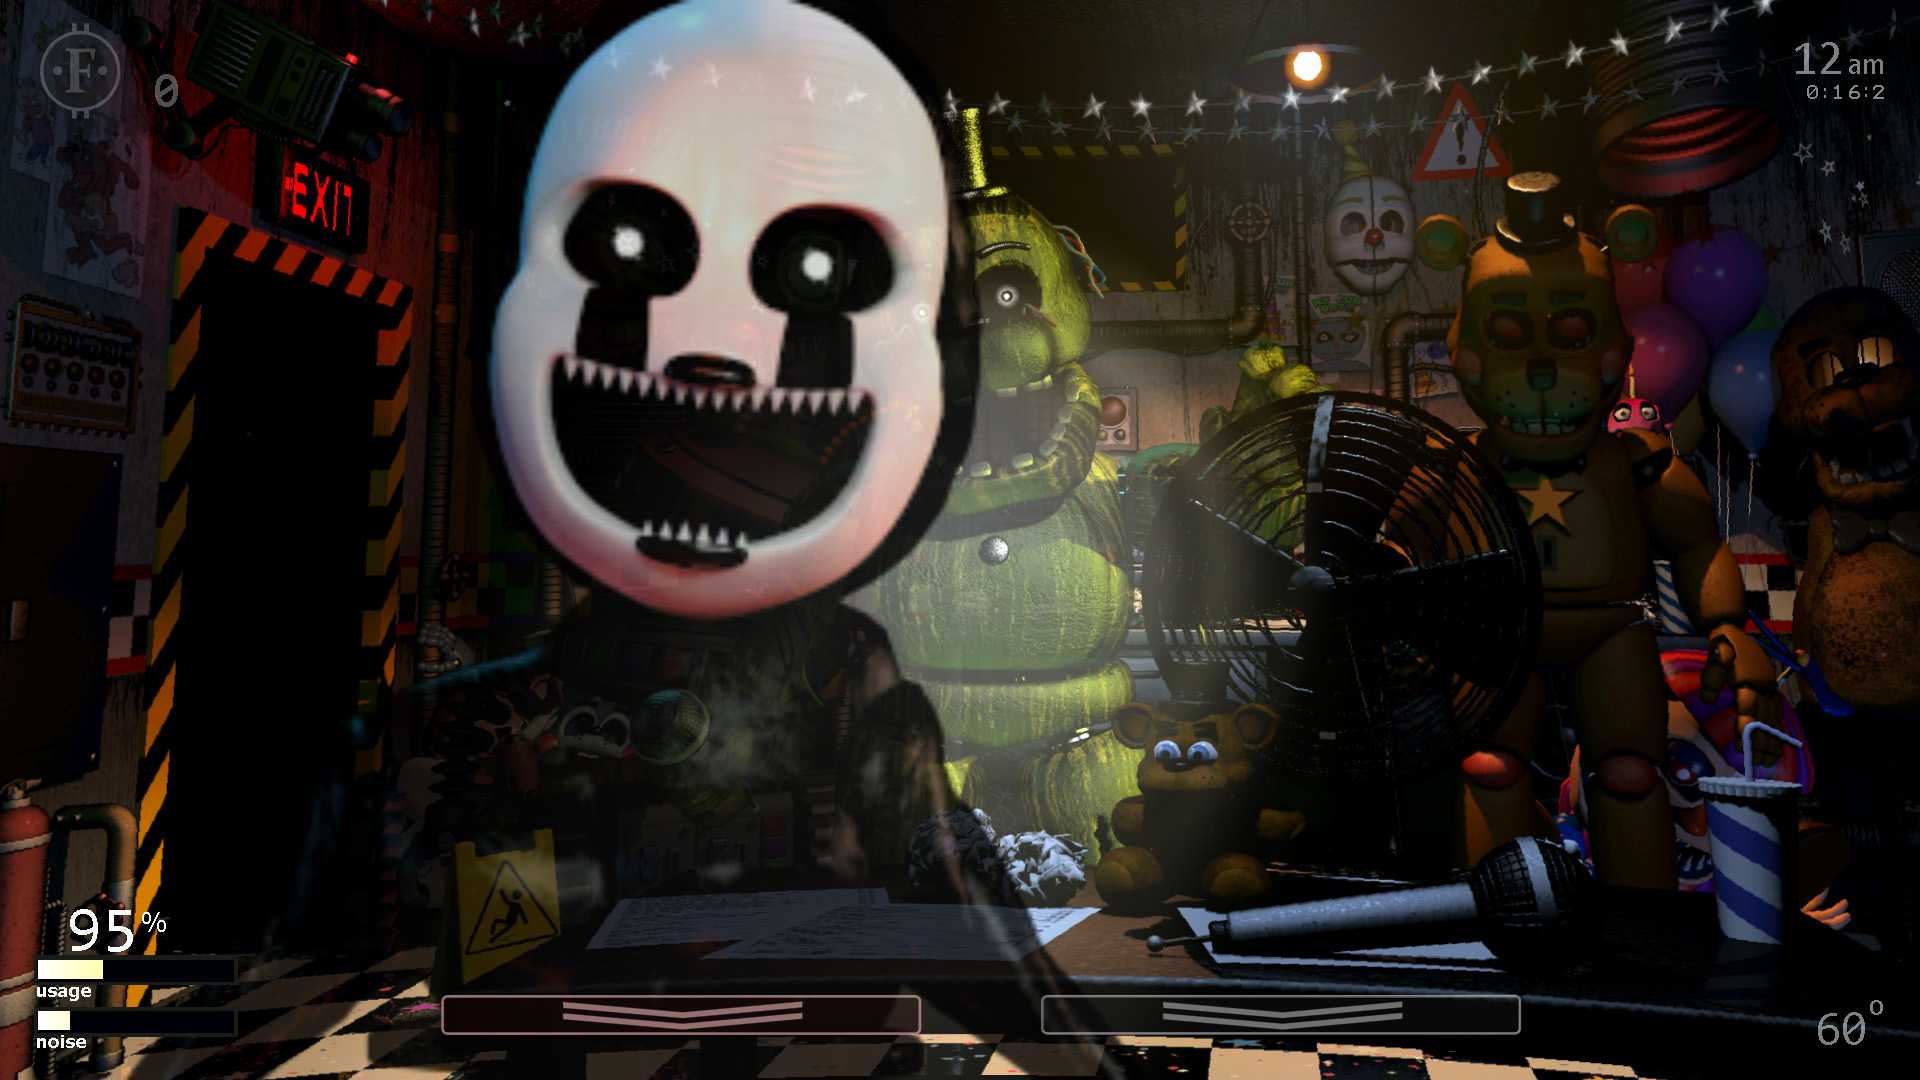 Five Nights At Freddy's: Even Creepier in VR - Games Mojo Blog